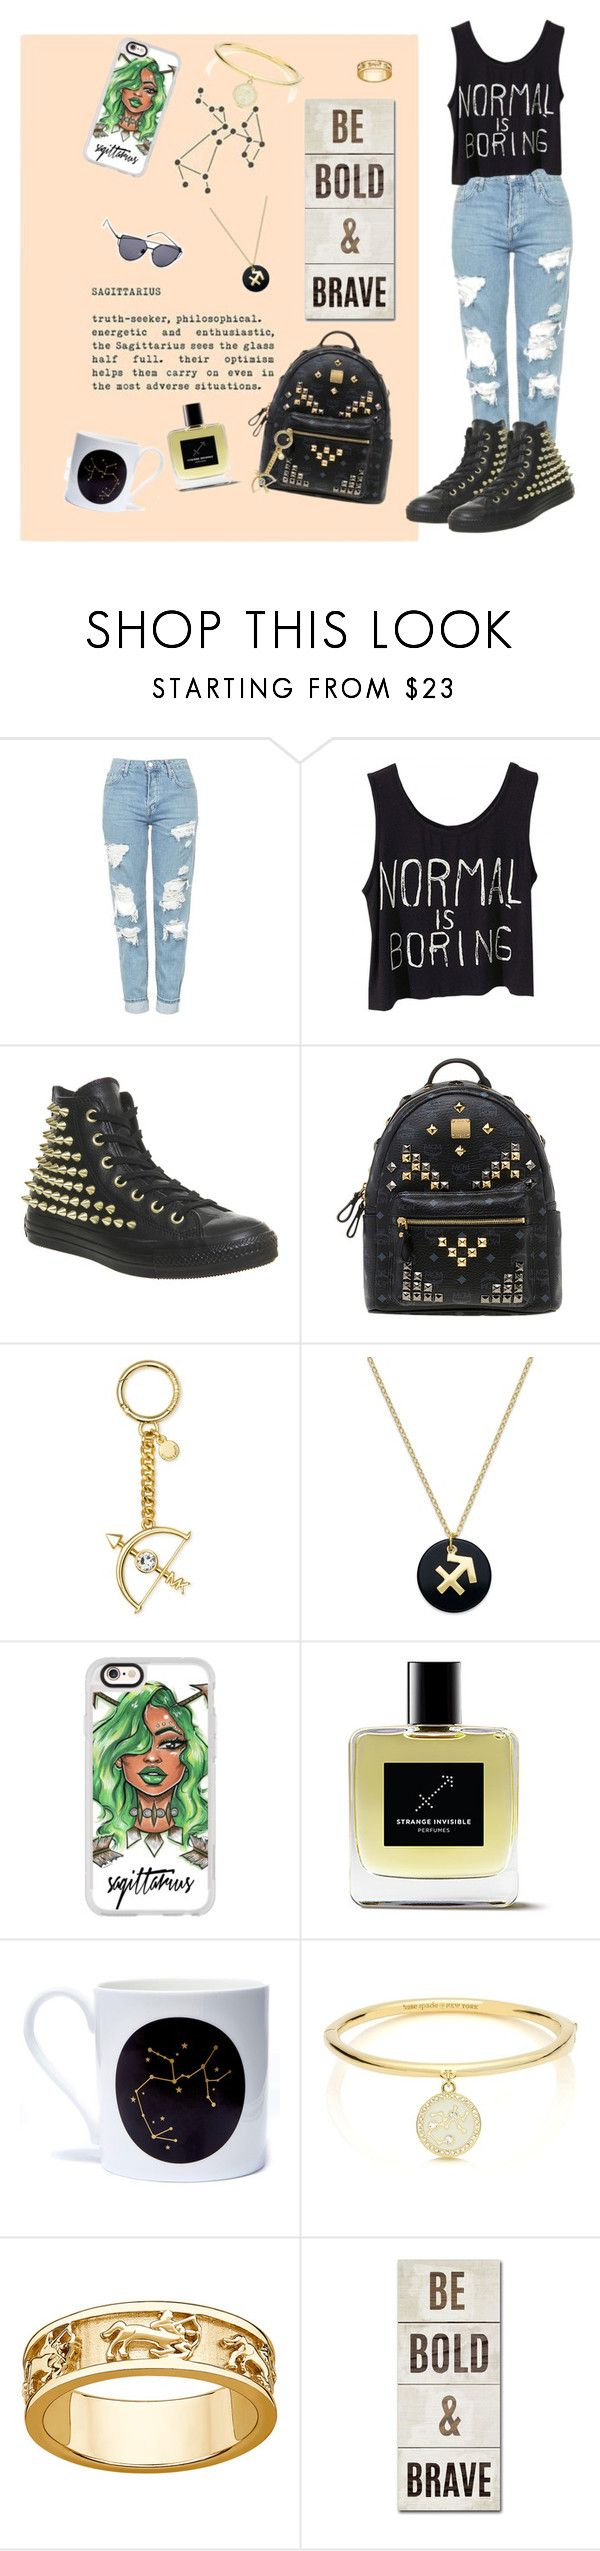 """""""Sagittarius"""" by im-angelacoleen ❤ liked on Polyvore featuring Topshop, Converse, MCM, Michael Kors, Giani Bernini, Casetify, Lollipop Designs, Kate Spade and Trademark Fine Art"""